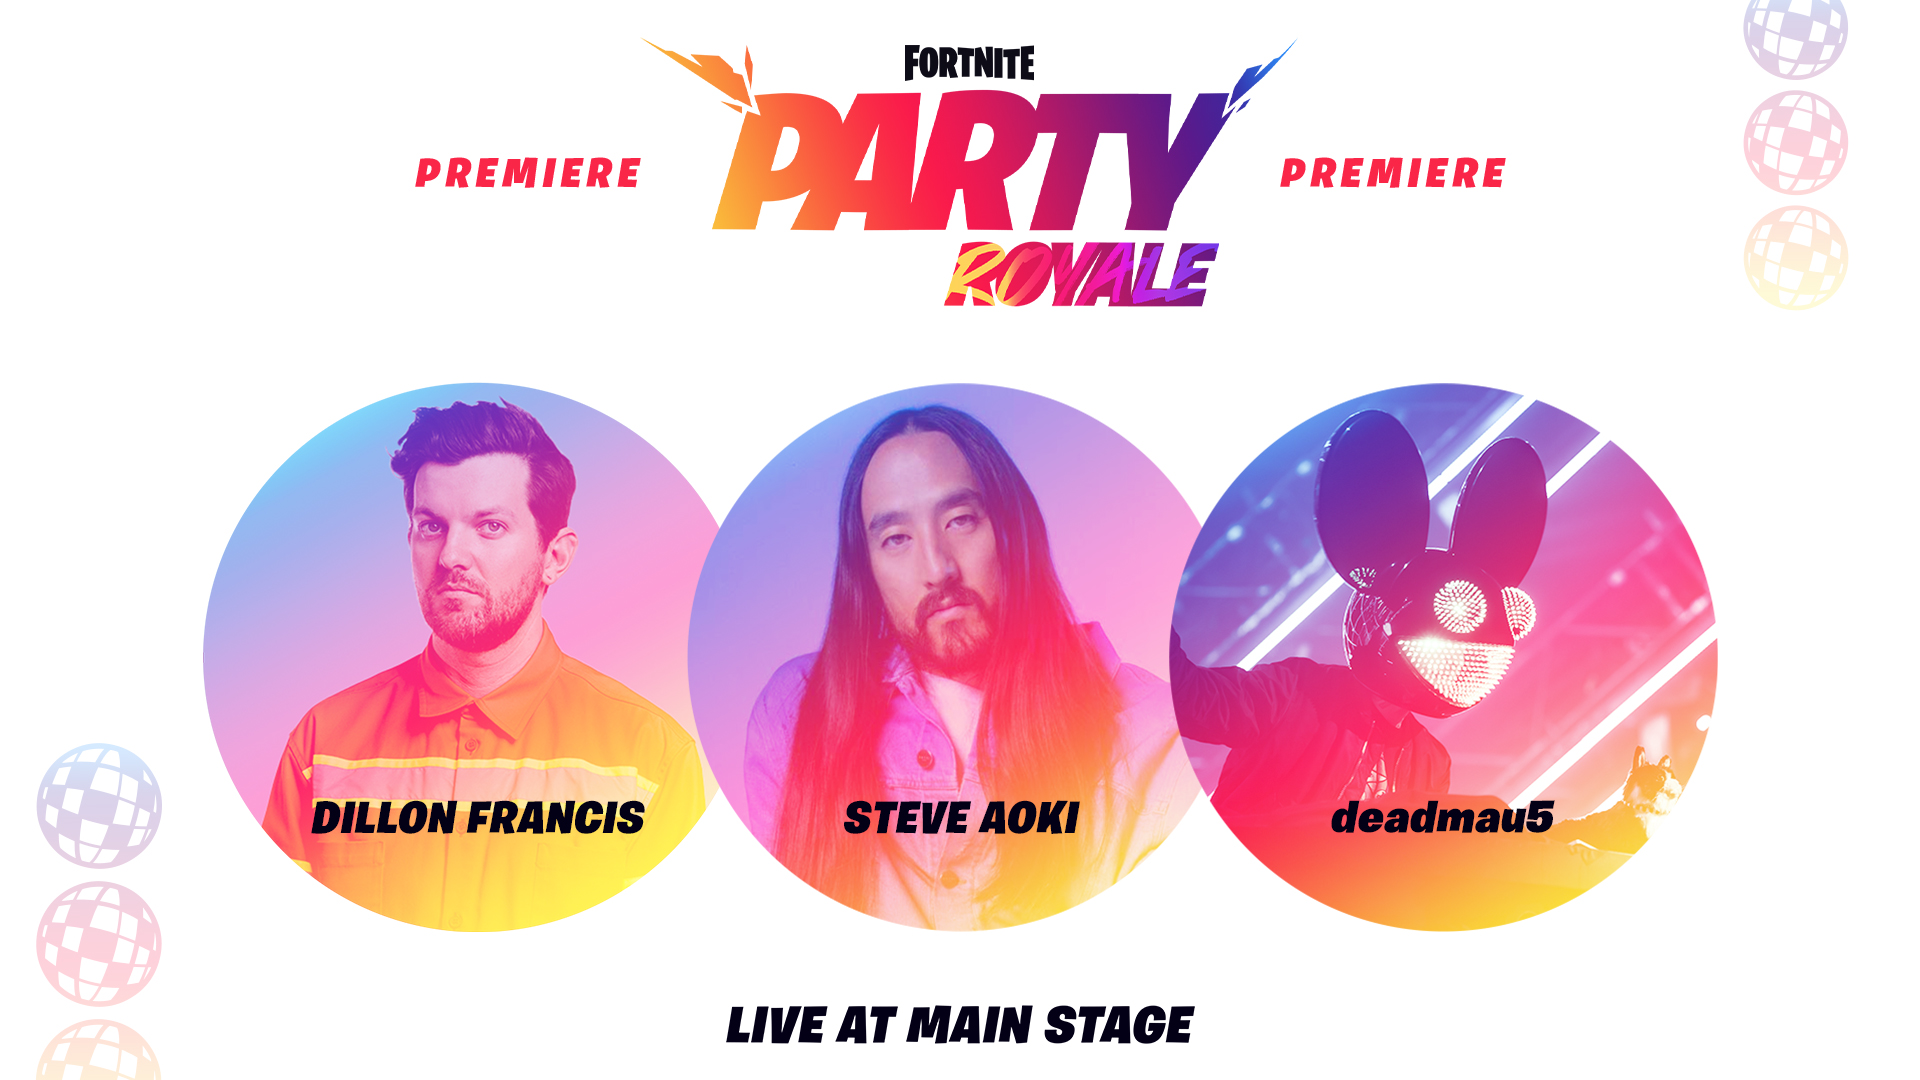 Fortnite's Party Royale Premiere Featuring Dillon Francis, Steve Aoki, and deadmau5